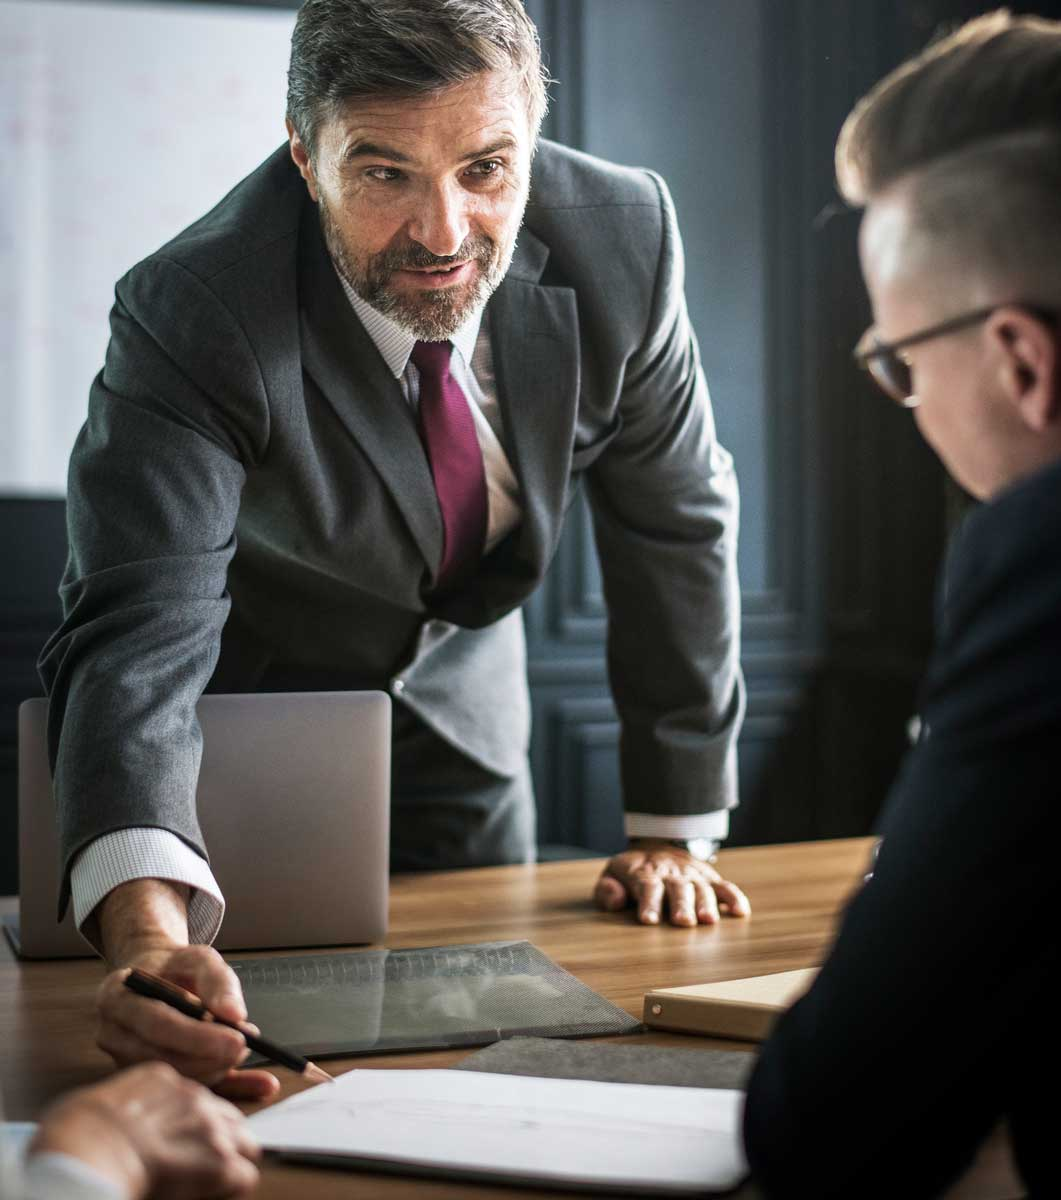 Attorney Consulting With Client - idaho falls attorney